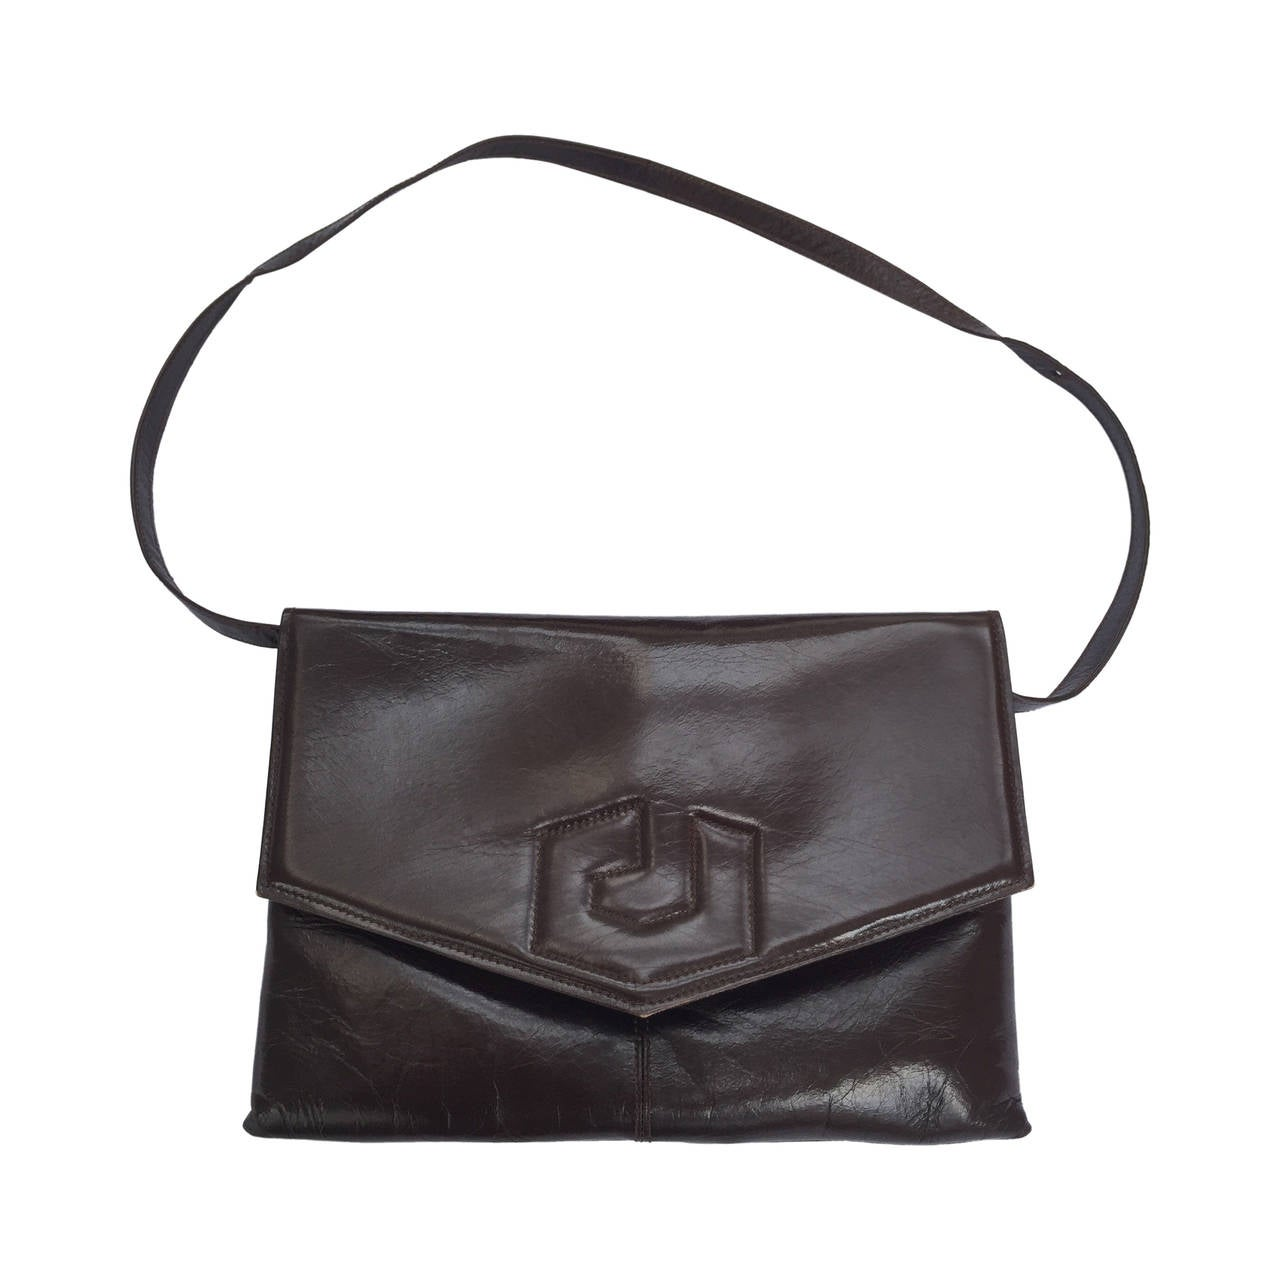 Charles Jourdan 70s brown leather shoulder / clutch handbag. For Sale